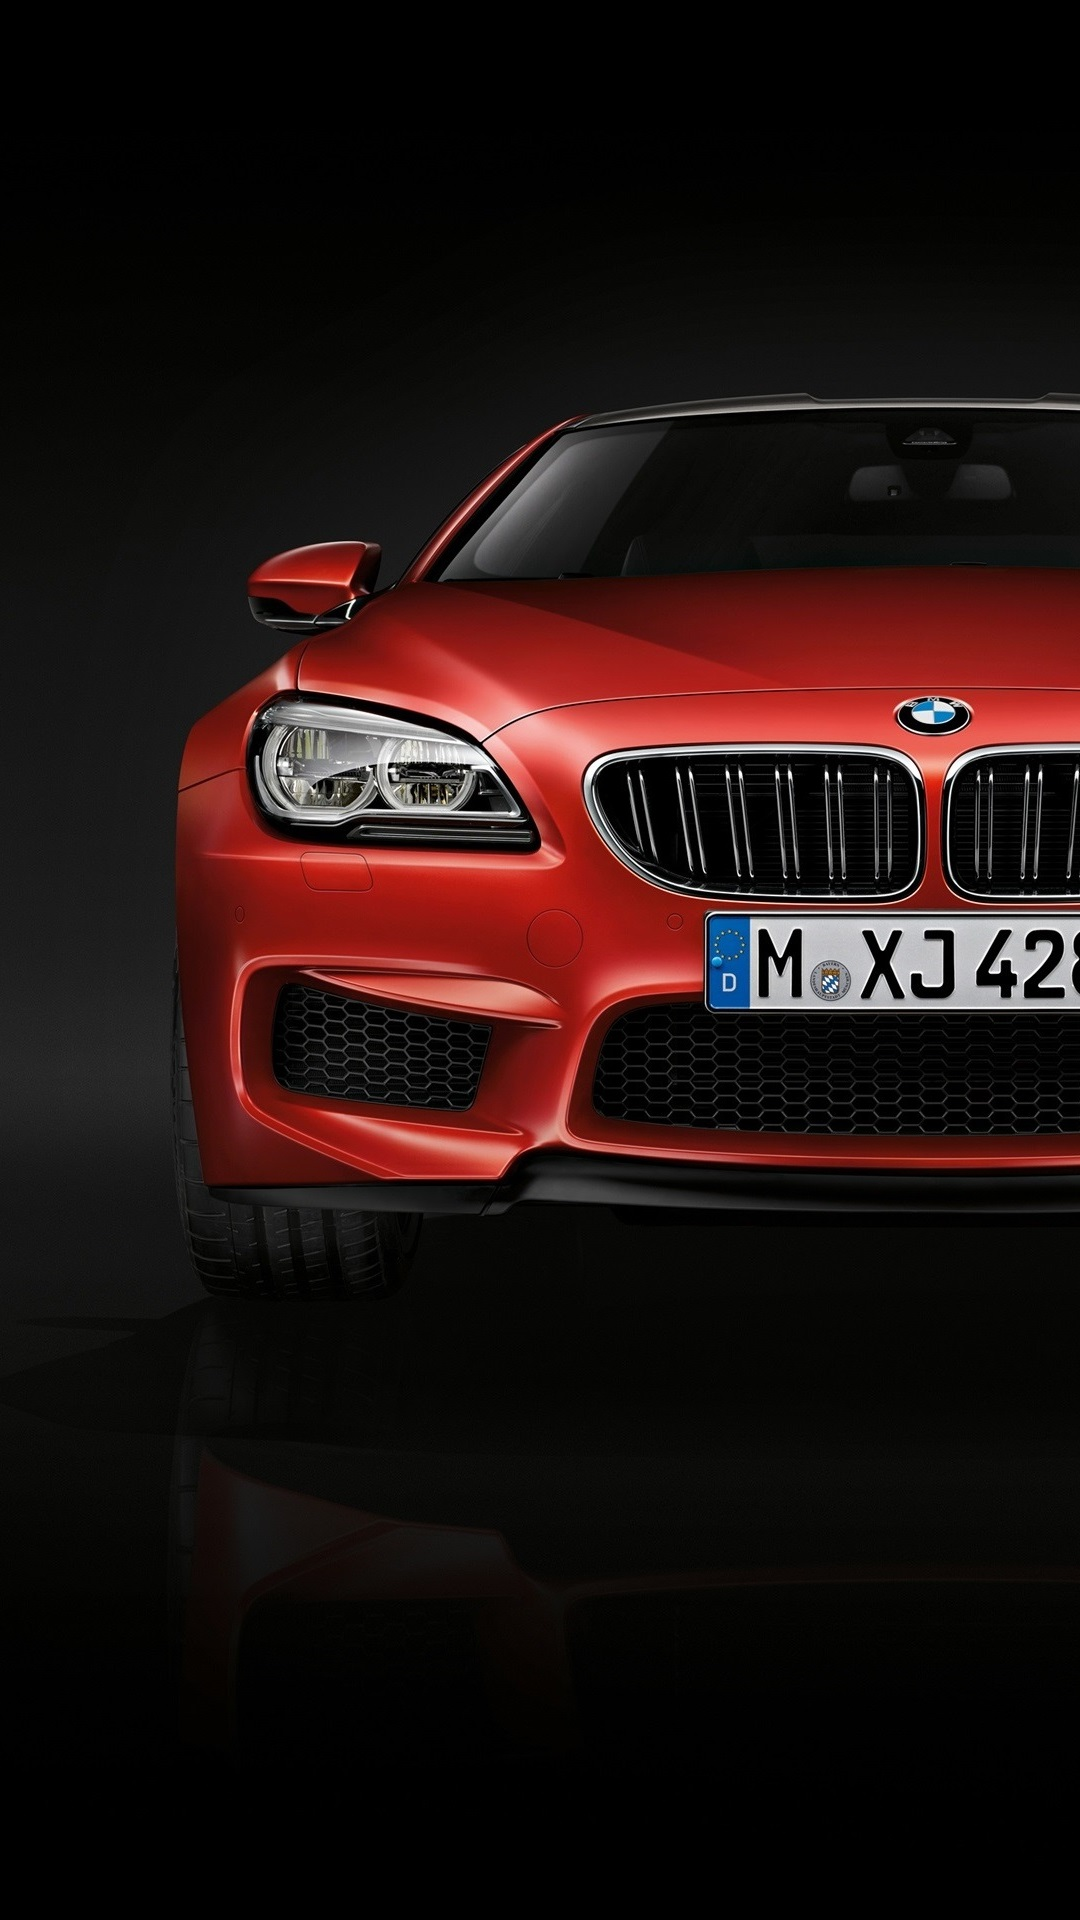 Wallpaper 2015 Bmw M6 Coupe F13 Red Car Front View 2560x1920 Hd Picture Image